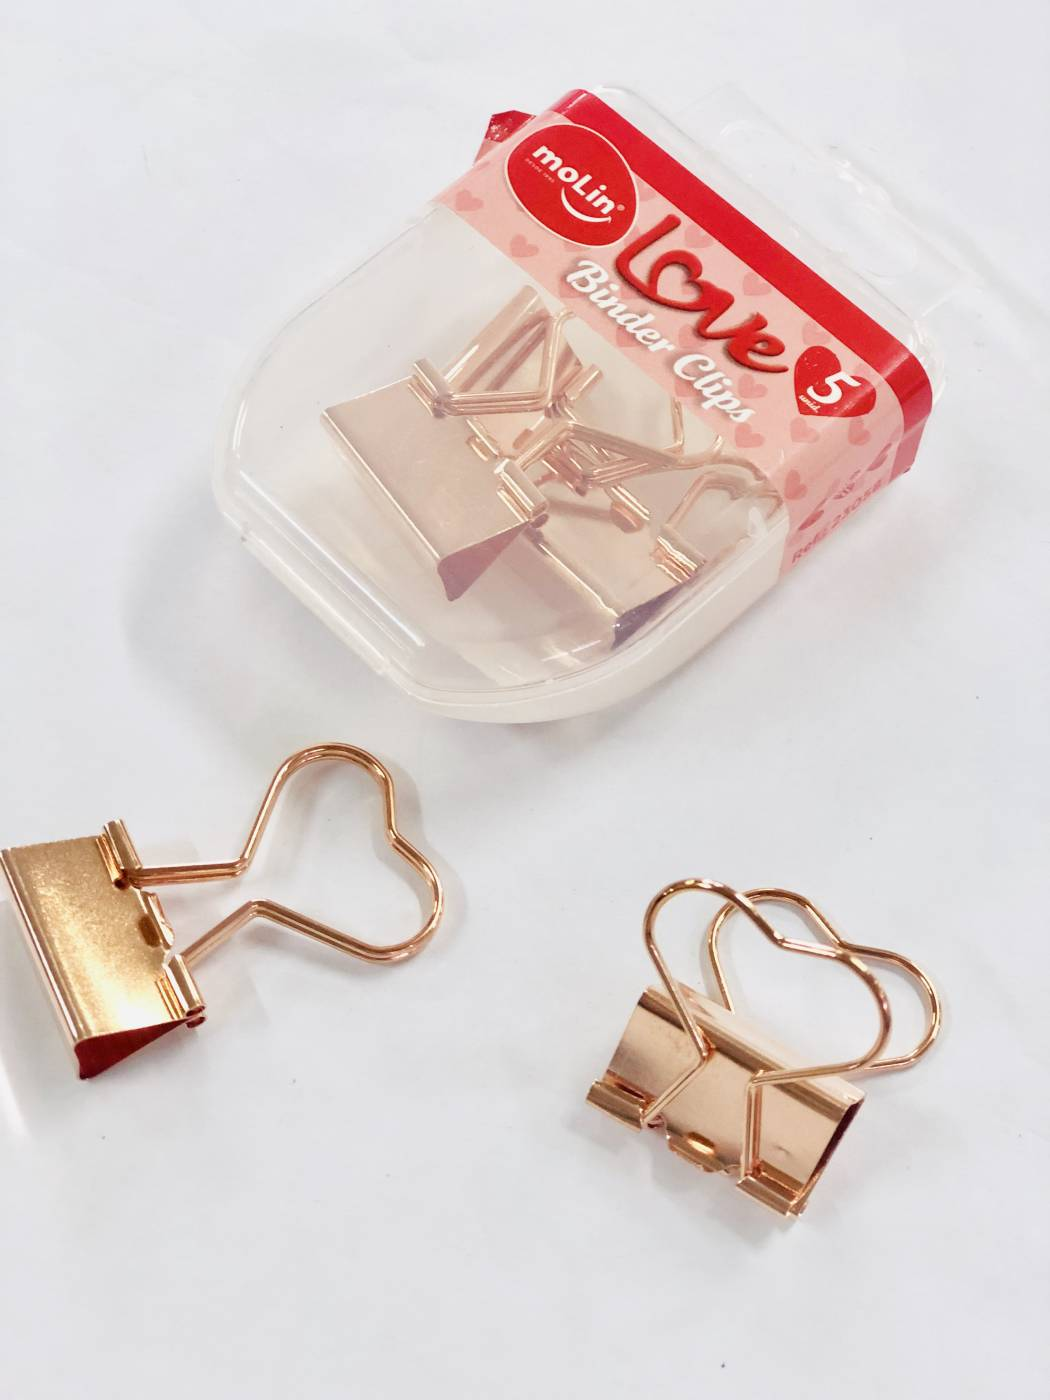 Binder Love Rose Gold 5un